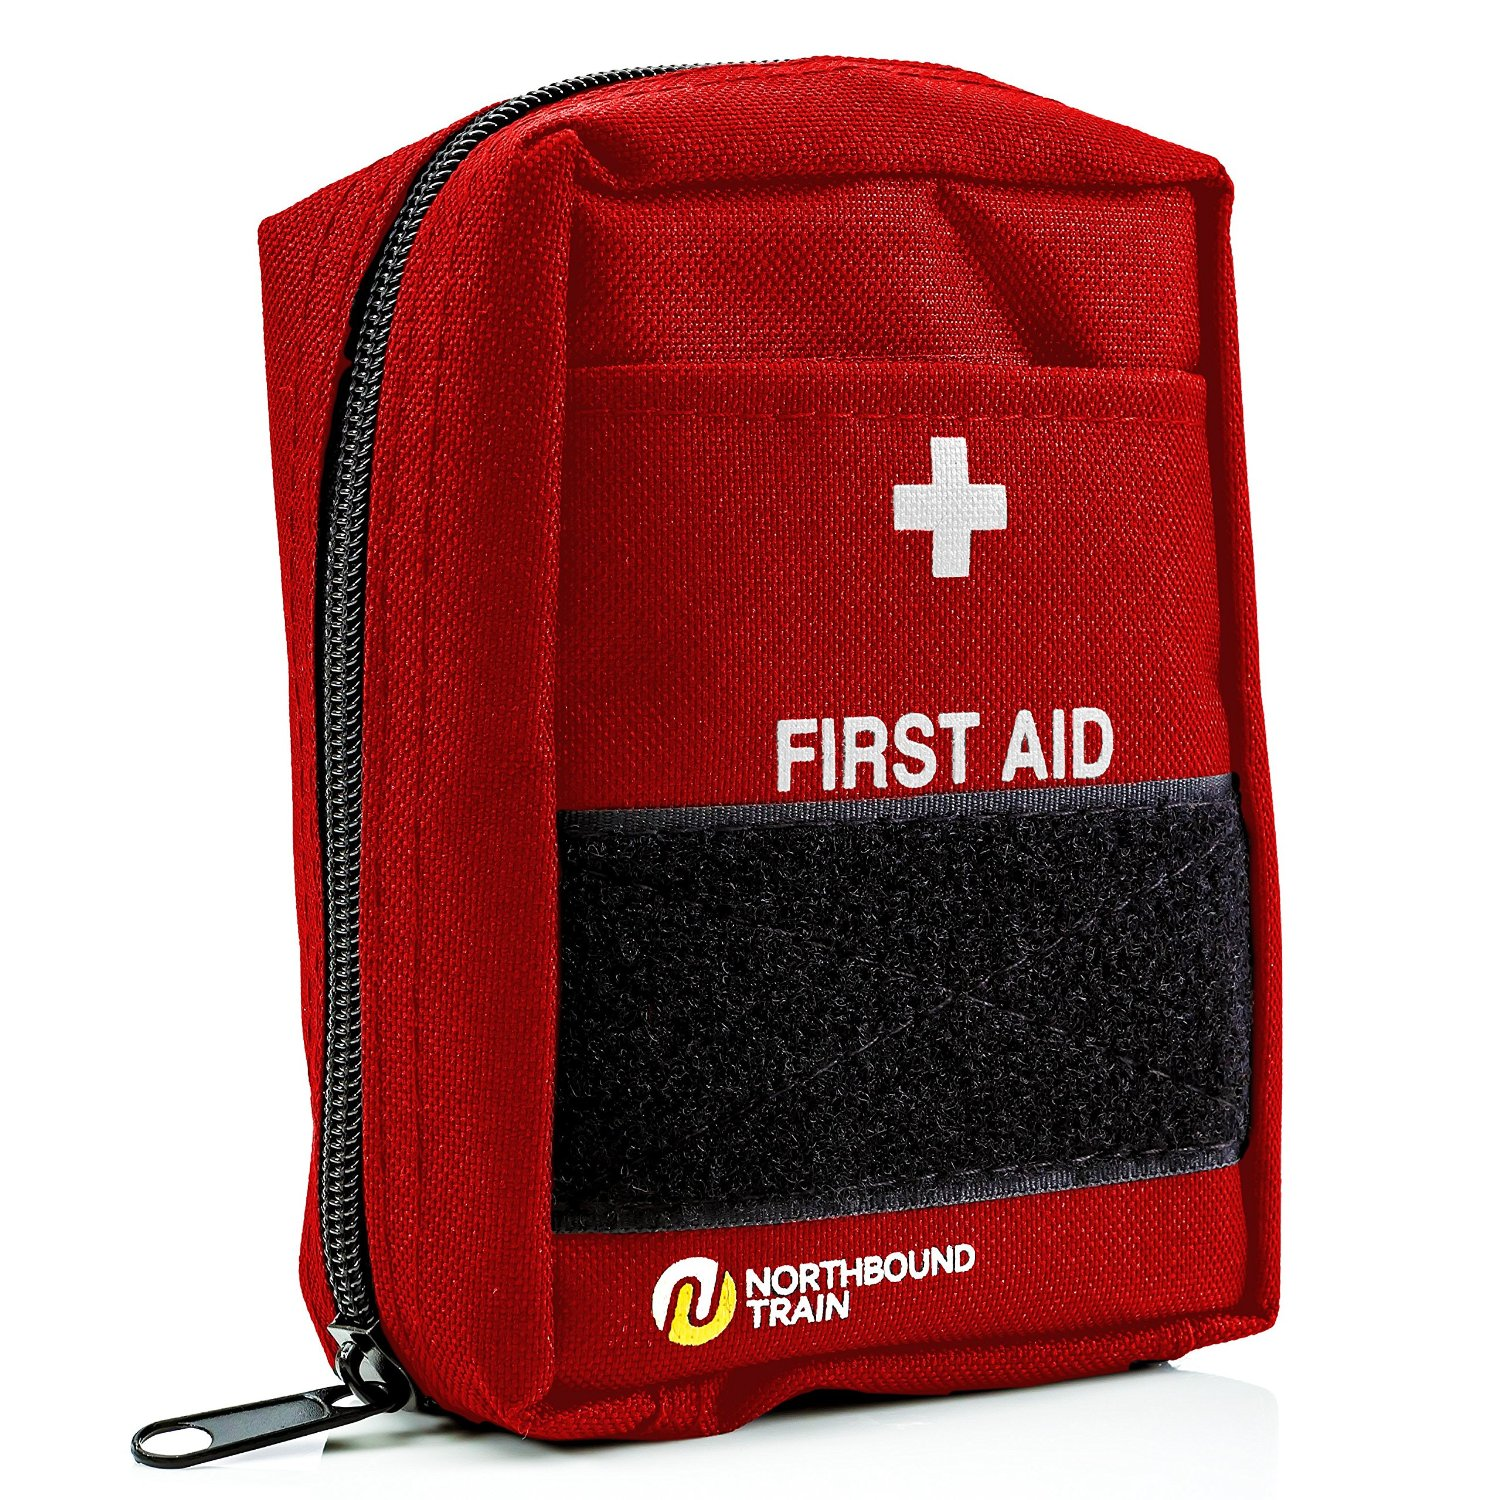 First Aid Kit (currently 50% off)